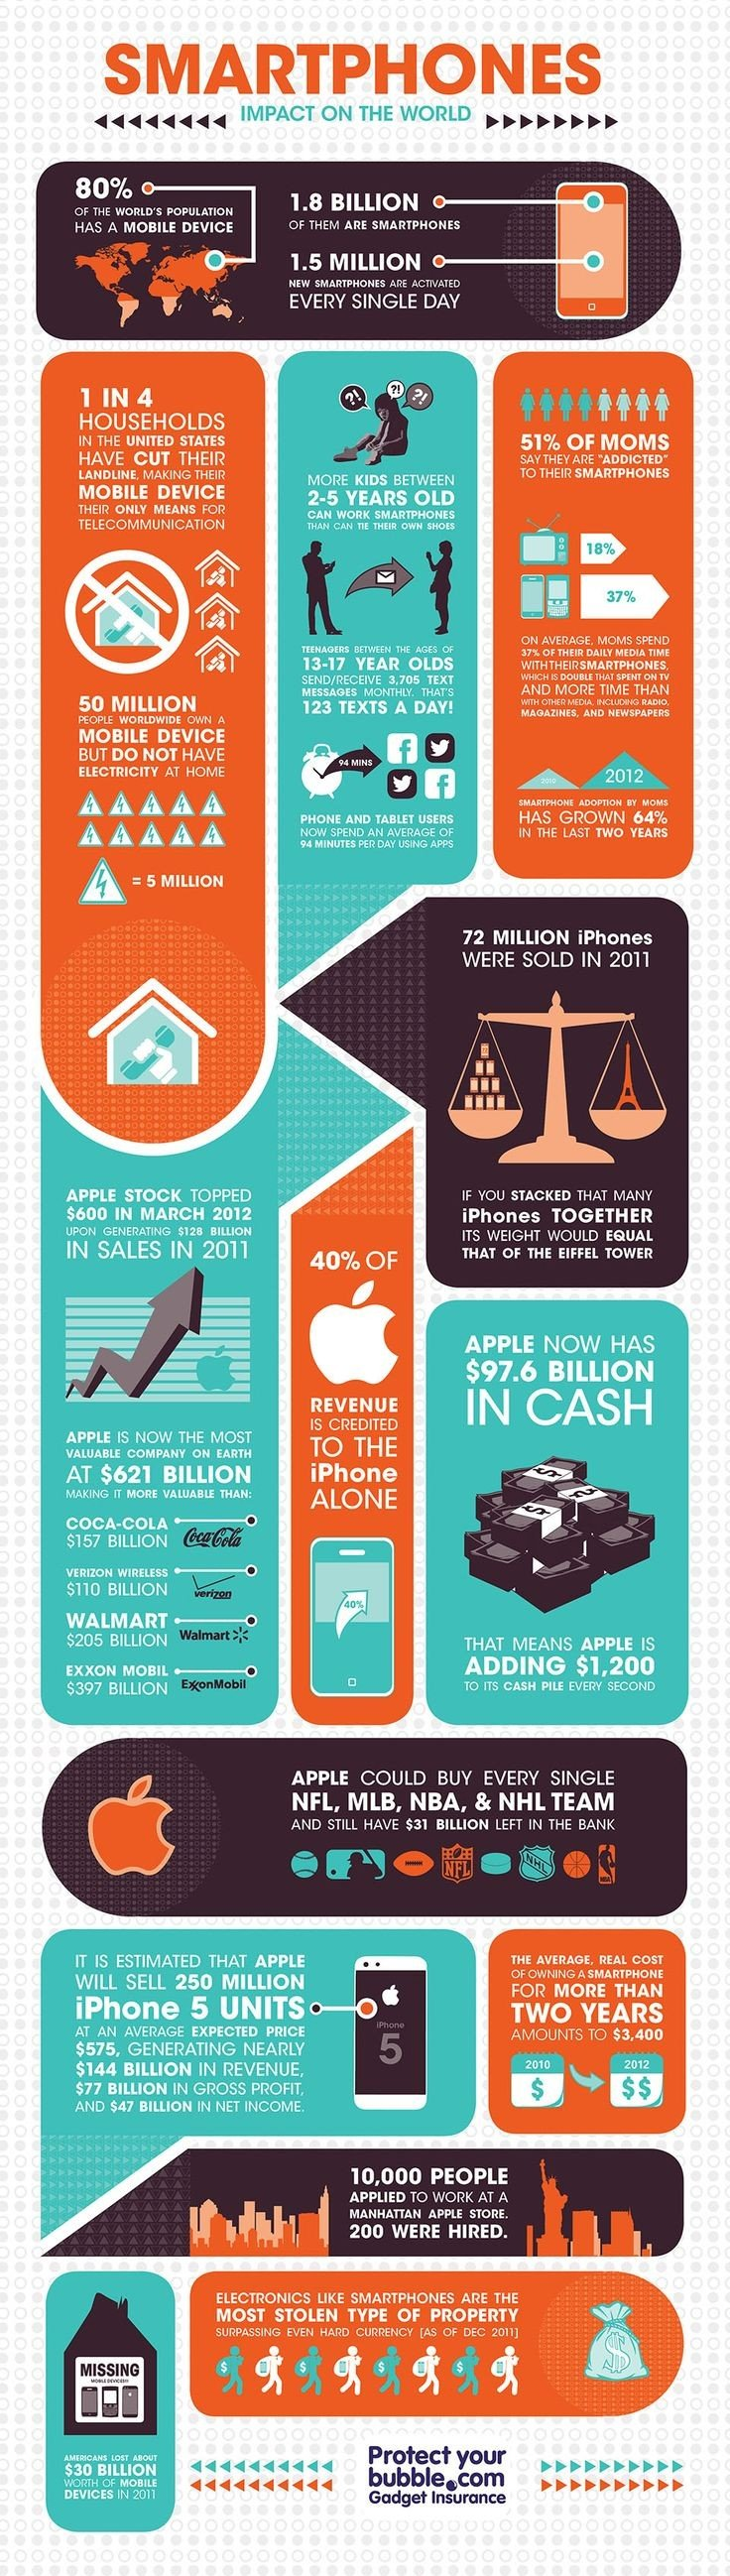 Smartphones impact on the world #Infographic